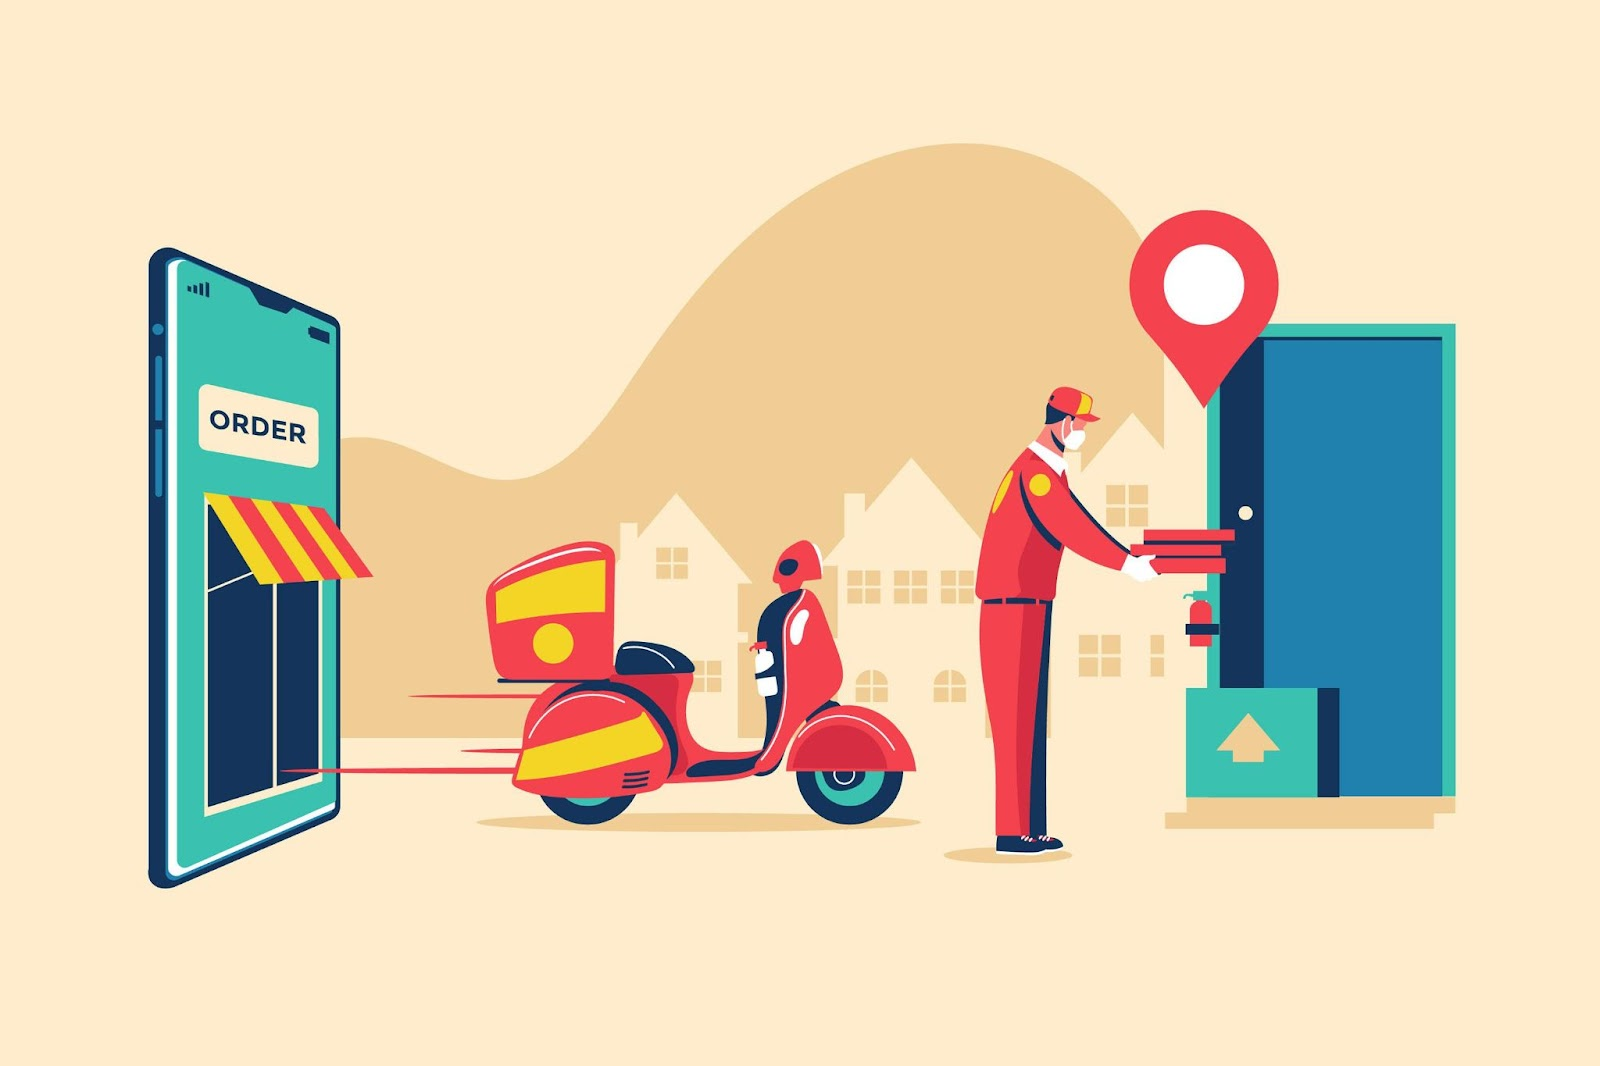 Use of Predictive models in food delivery sector